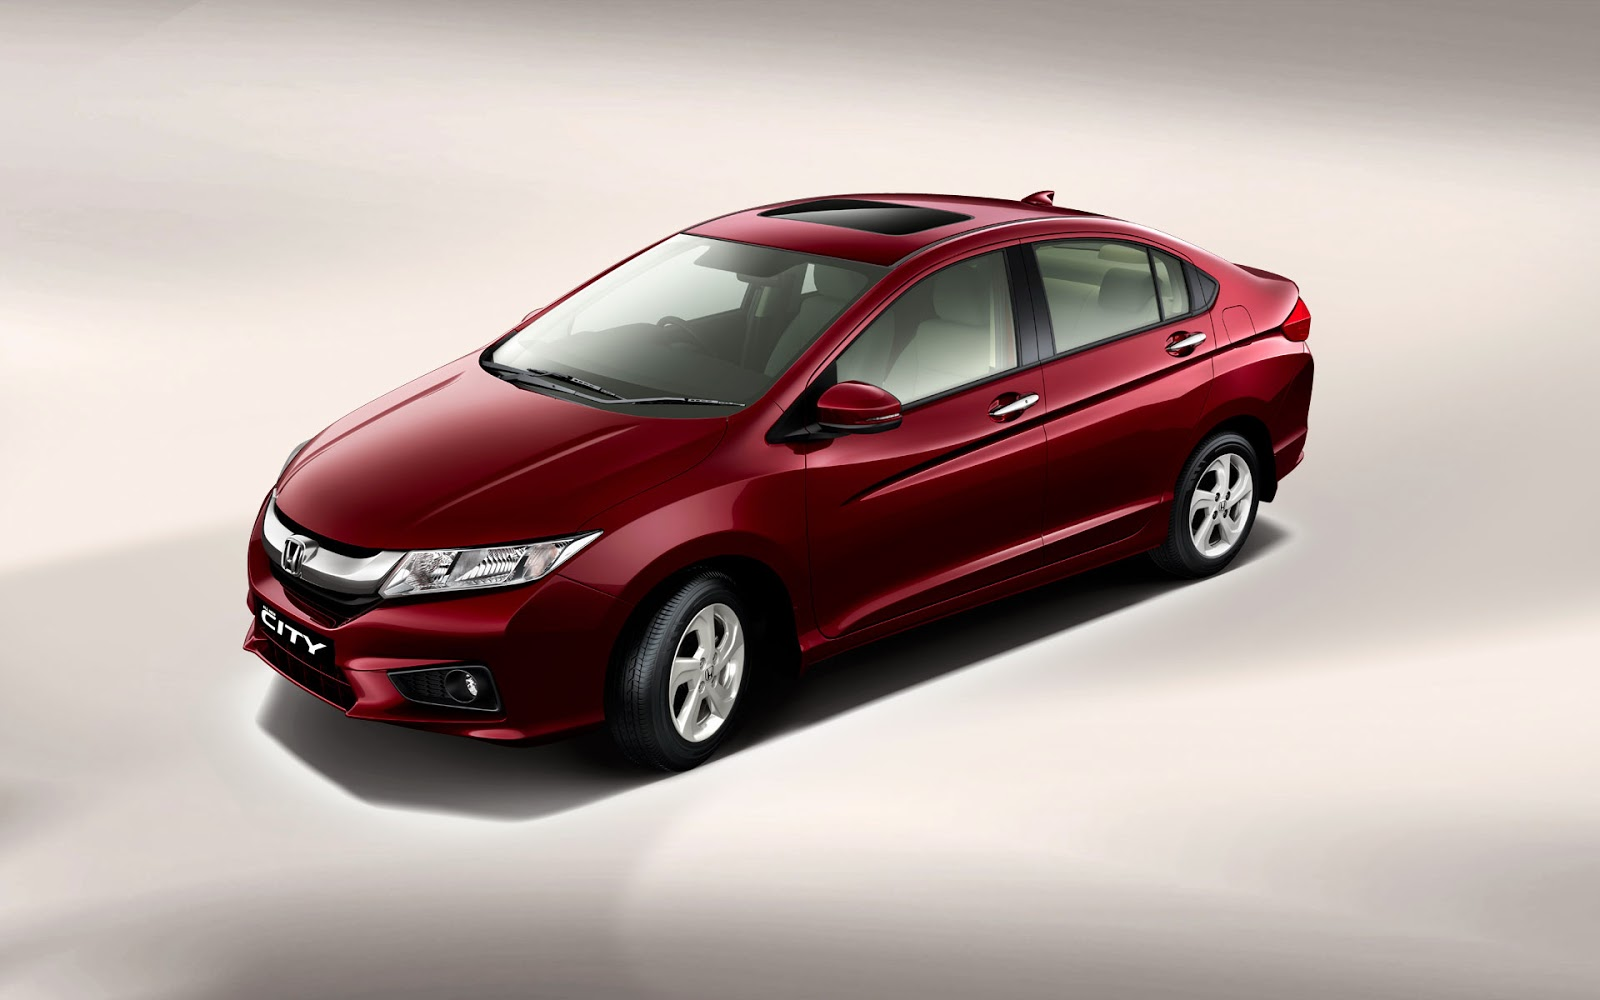 All New Honda City 2014:First Look from MerryBrains